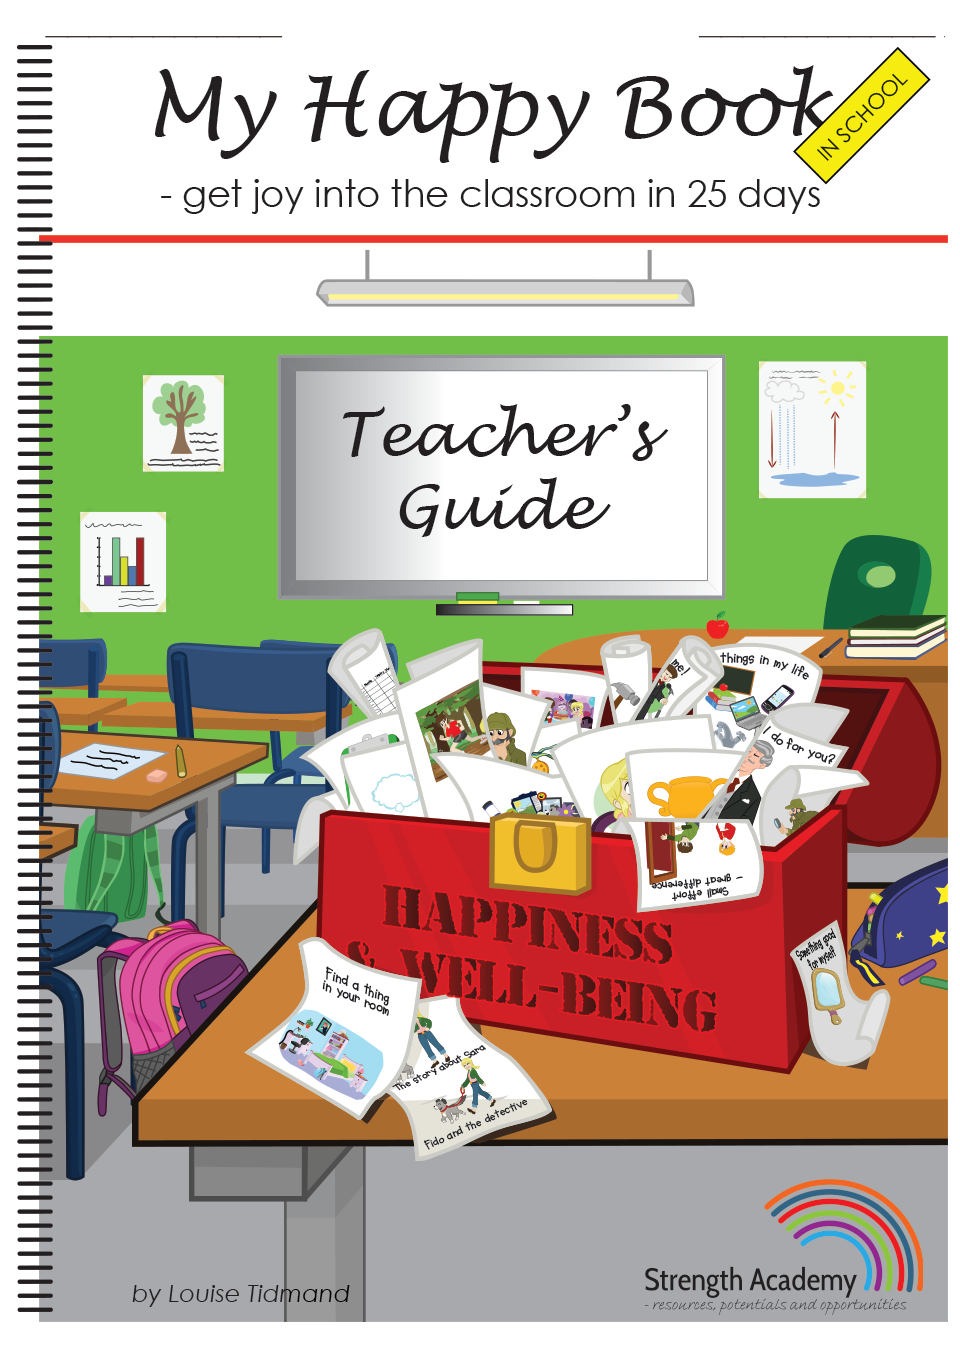 My Happy Book in School - get joy into the classroom in 25 days, teacher's guide